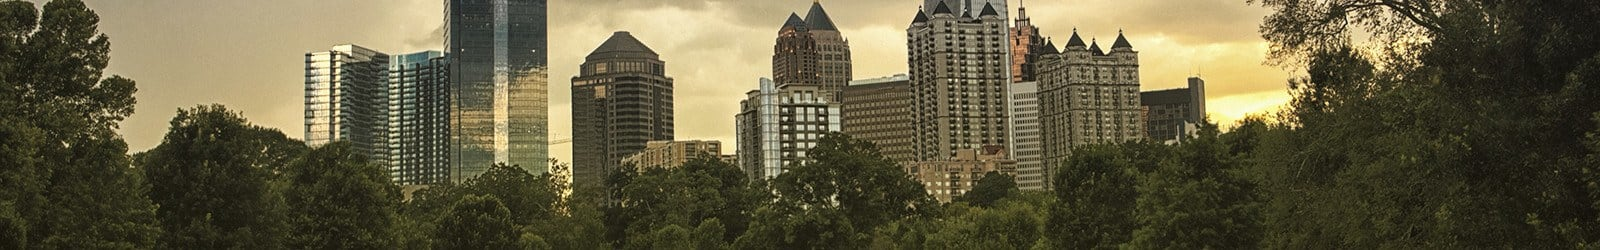 Contact City Plaza for information about our apartments in Atlanta